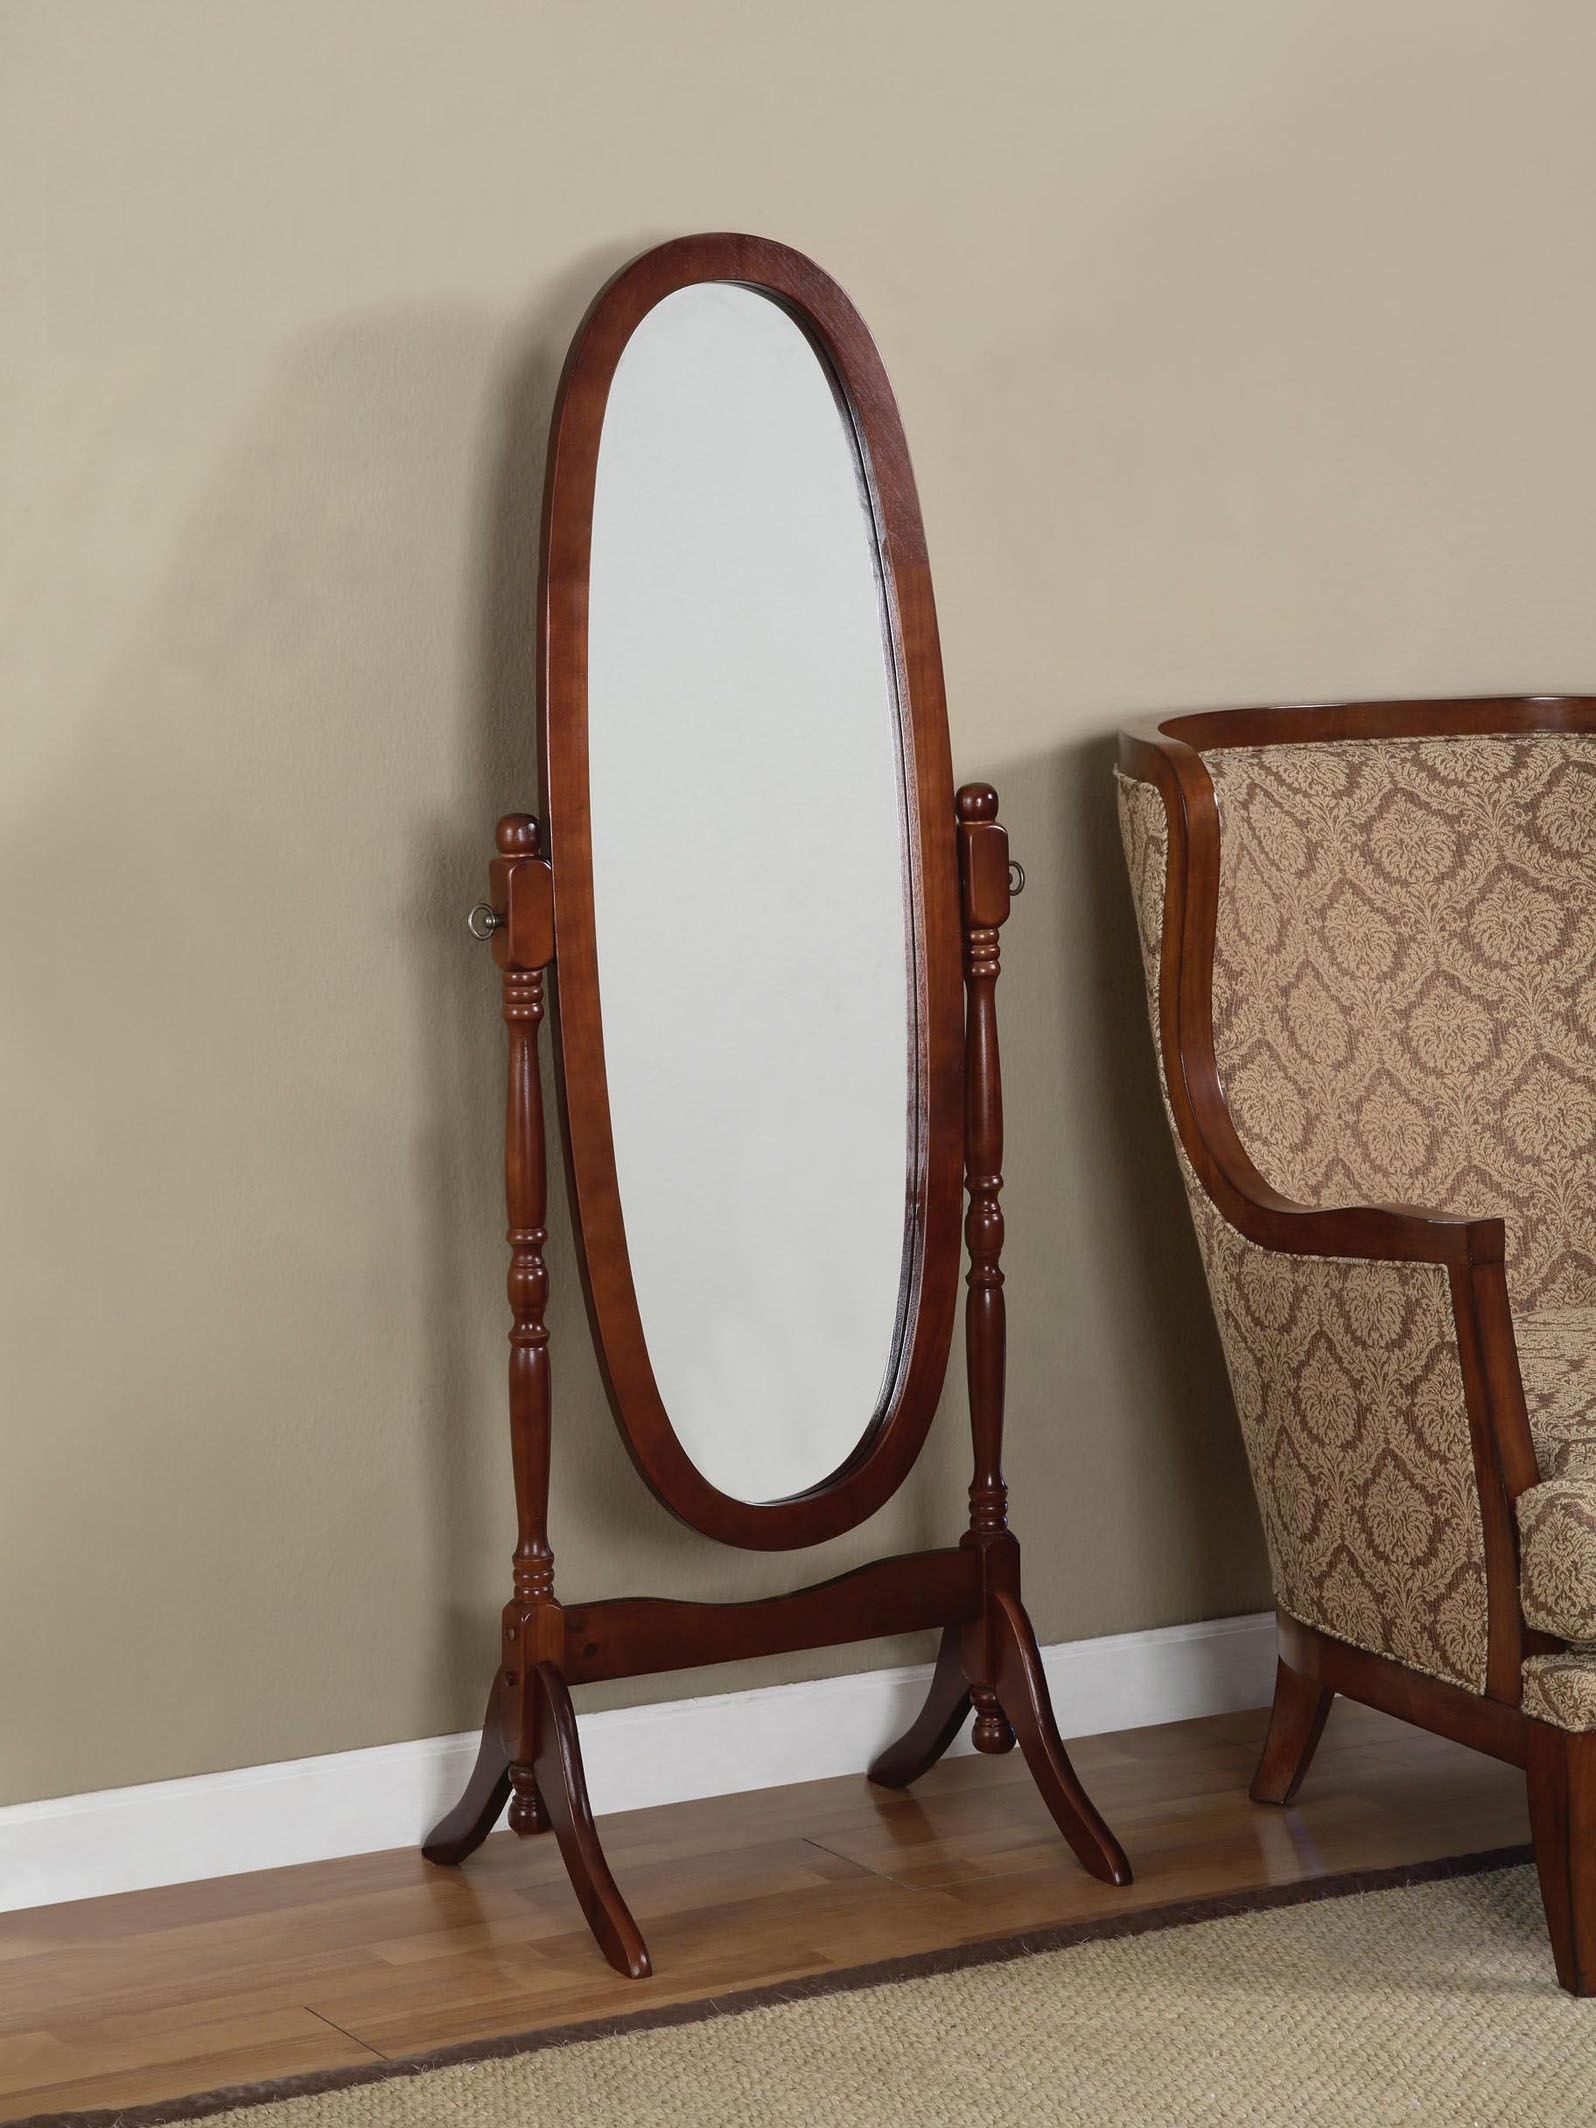 Charming Cheval Mirror Jewelry Armoire Ideas Full Length Swivel In Cheval Free Standing Mirror (Image 5 of 15)